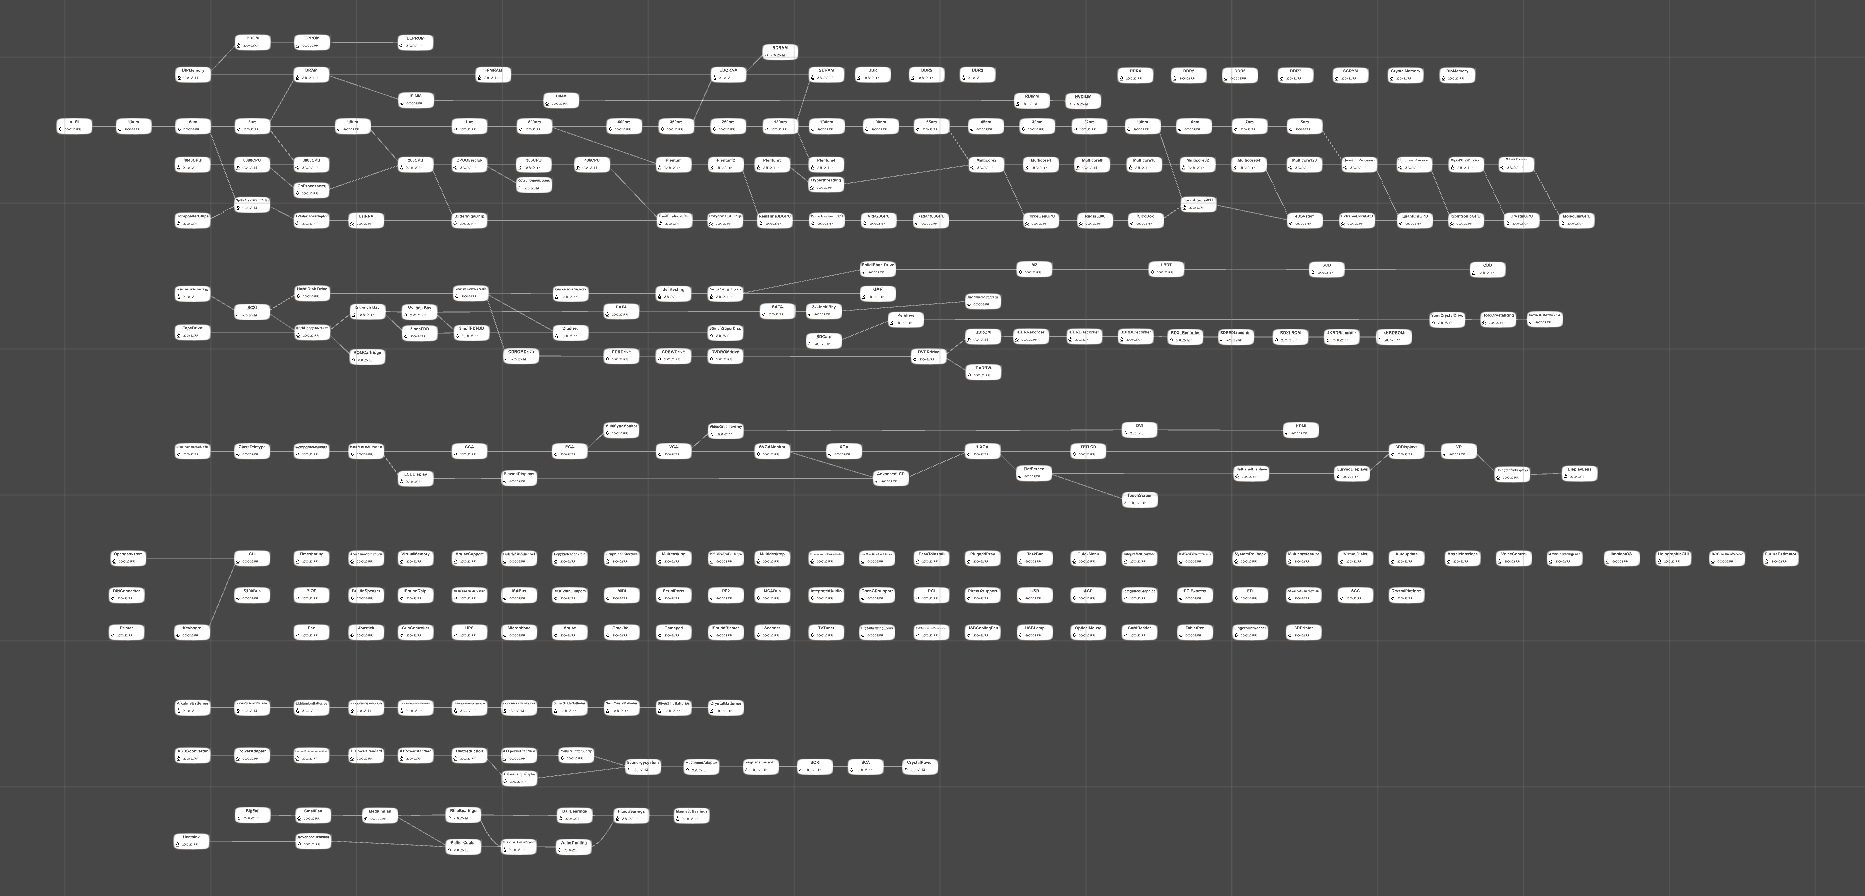 Progorion Blog Strategy And Sci Fi For The Win While I Don39t Know If A Diagram Like This Exists Moboard I39m Also Im Thinking How Will Inform Player About Technology Compatibilities Here Is An Example You Have Keyboard But No Displays Dont